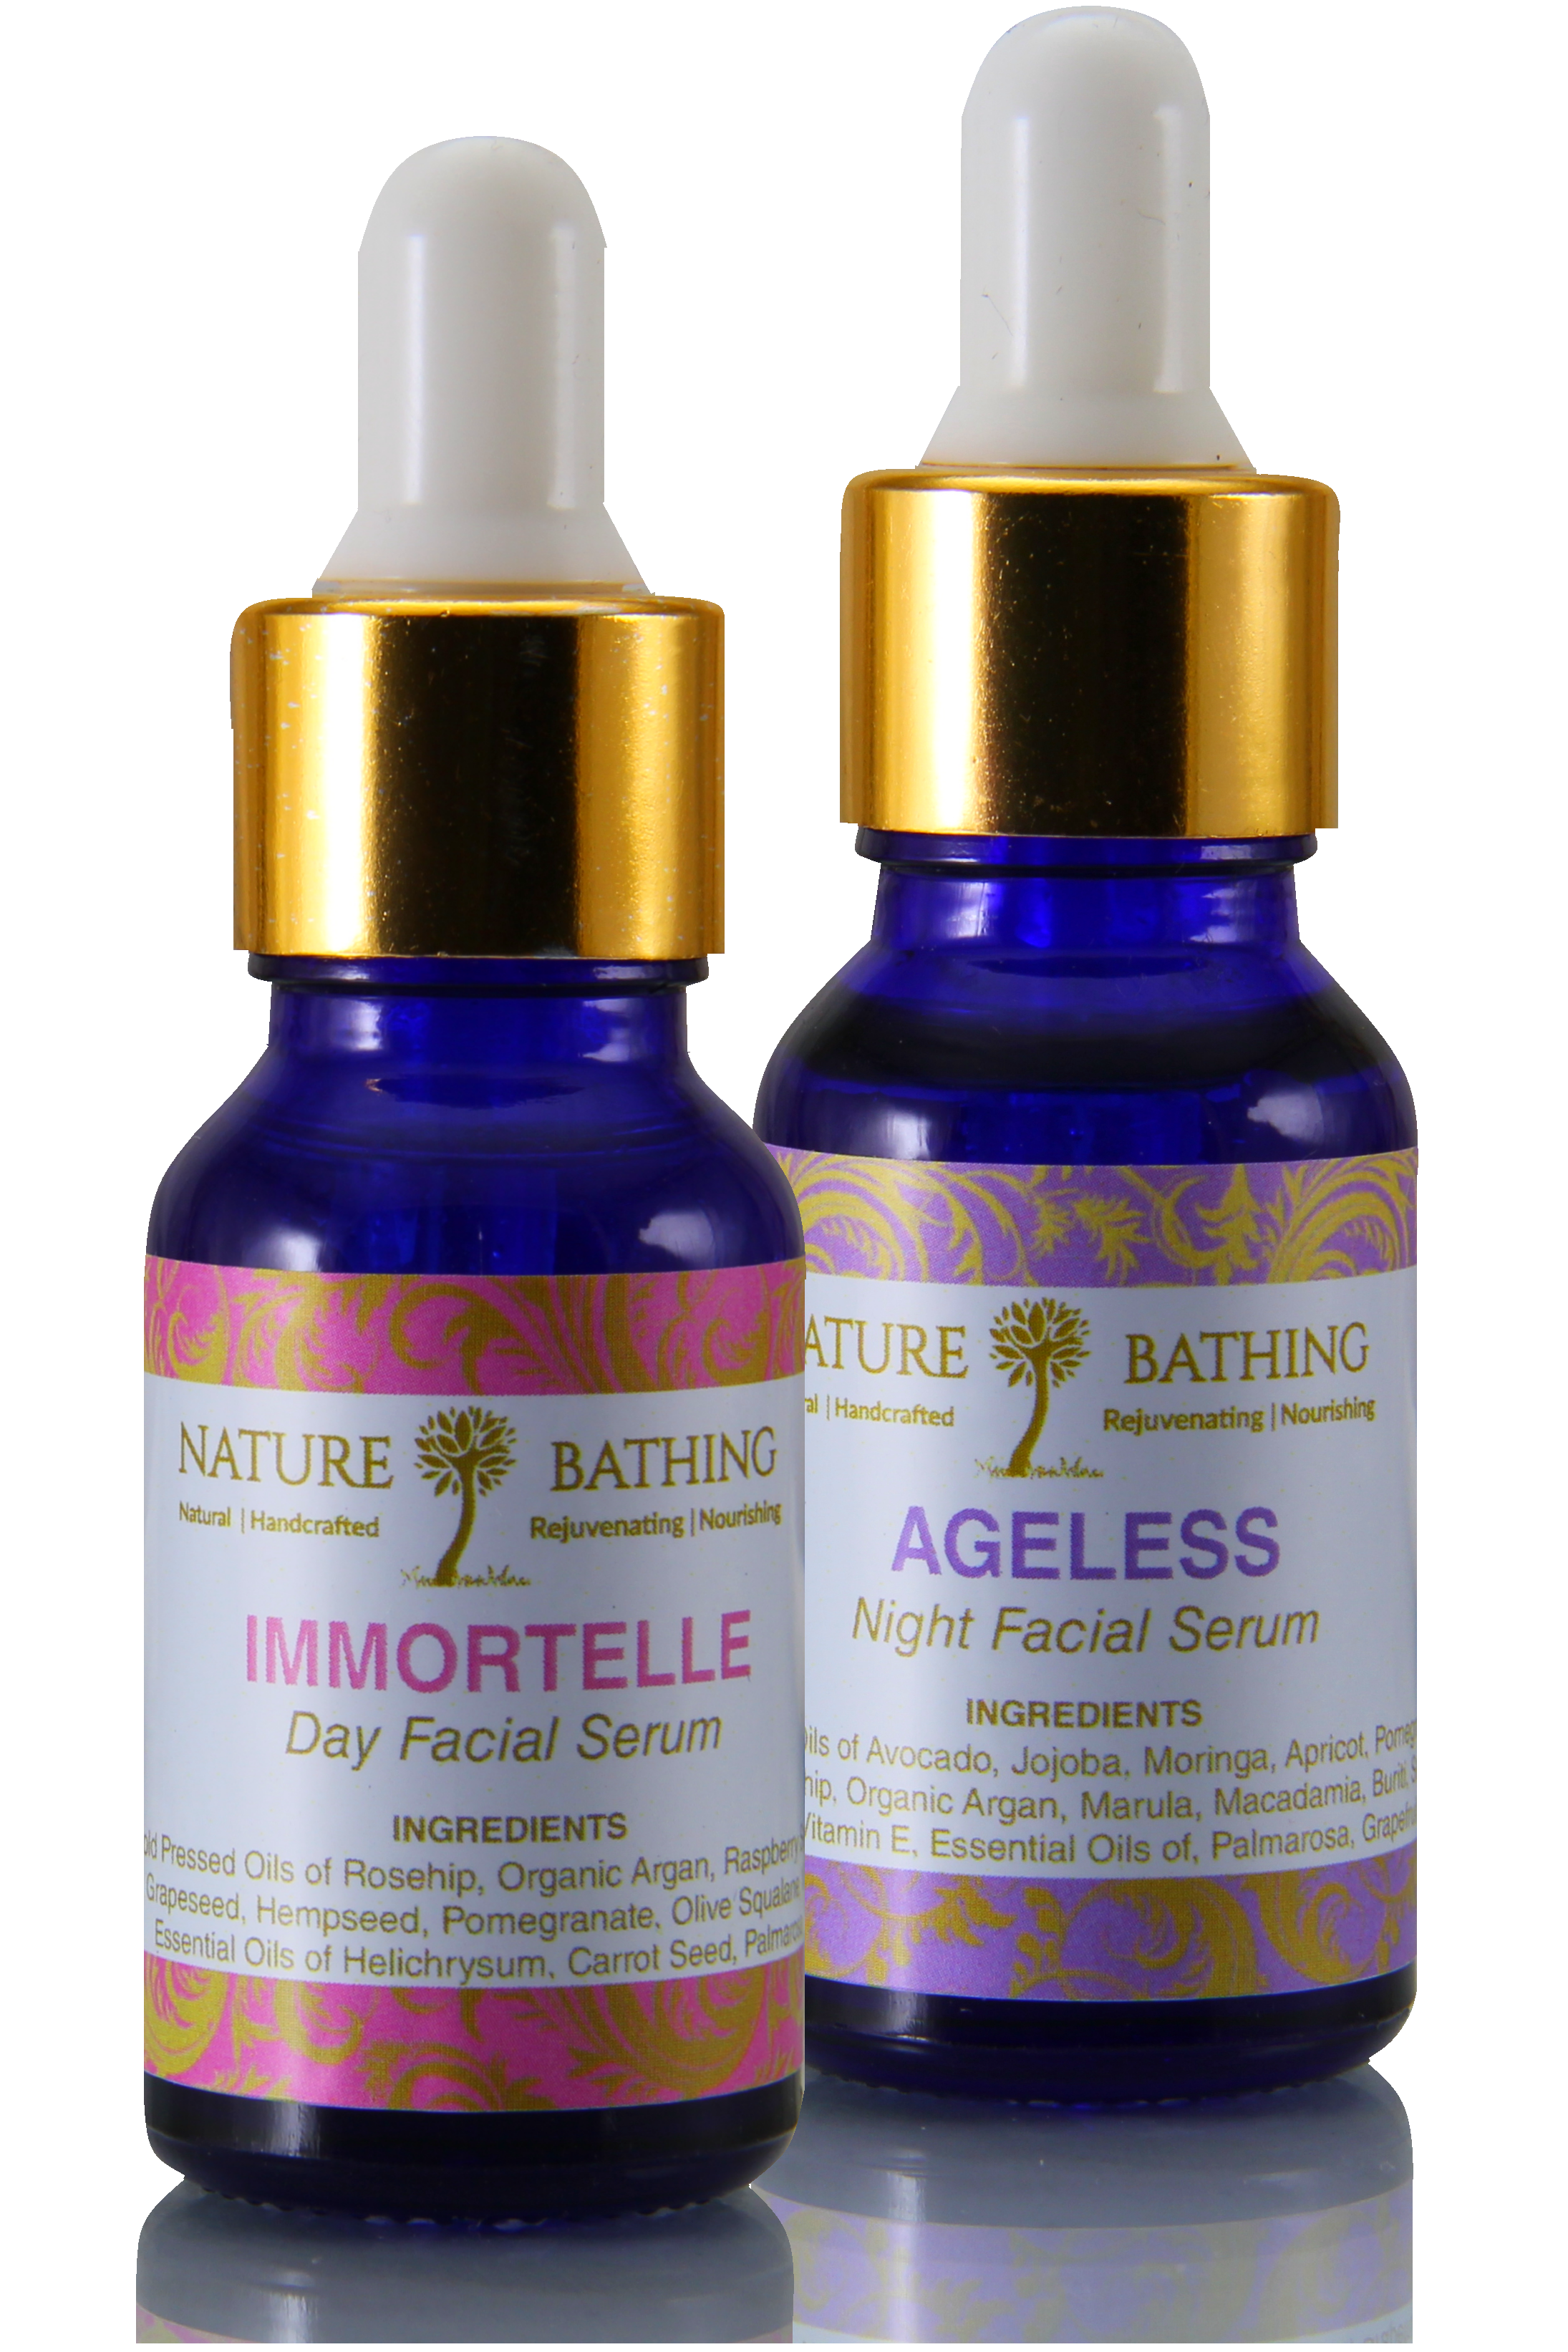 Day & Night Facial Serums